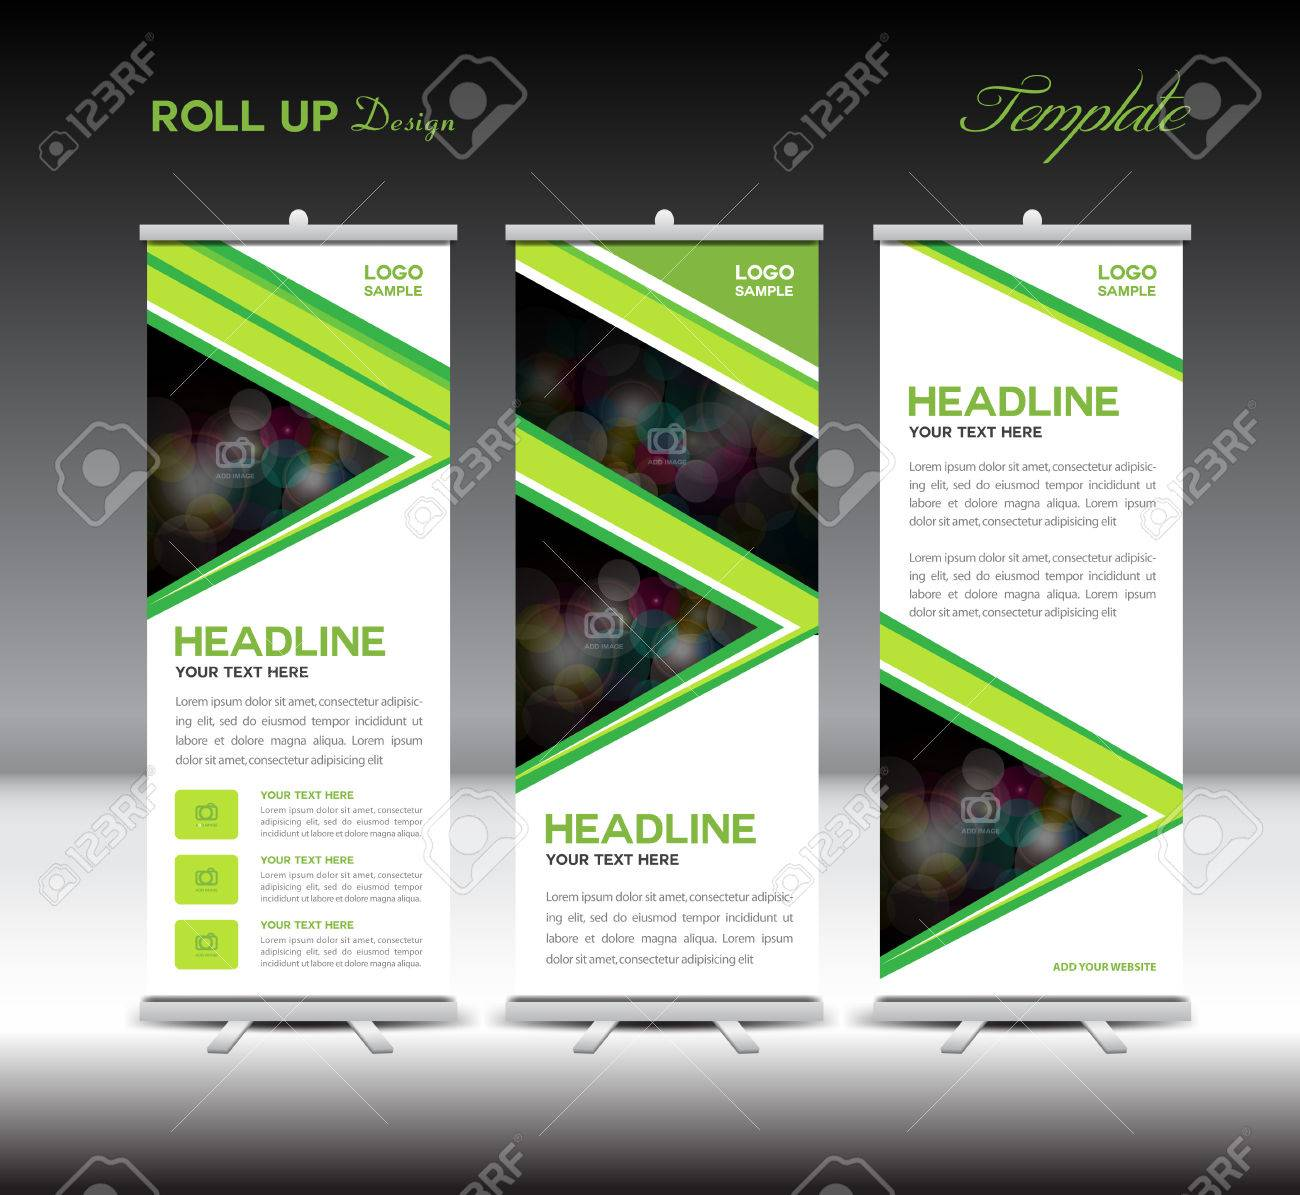 roll up banner template stand template advertisement layout design roll up banner template stand template advertisement layout design banner template green background stock vector